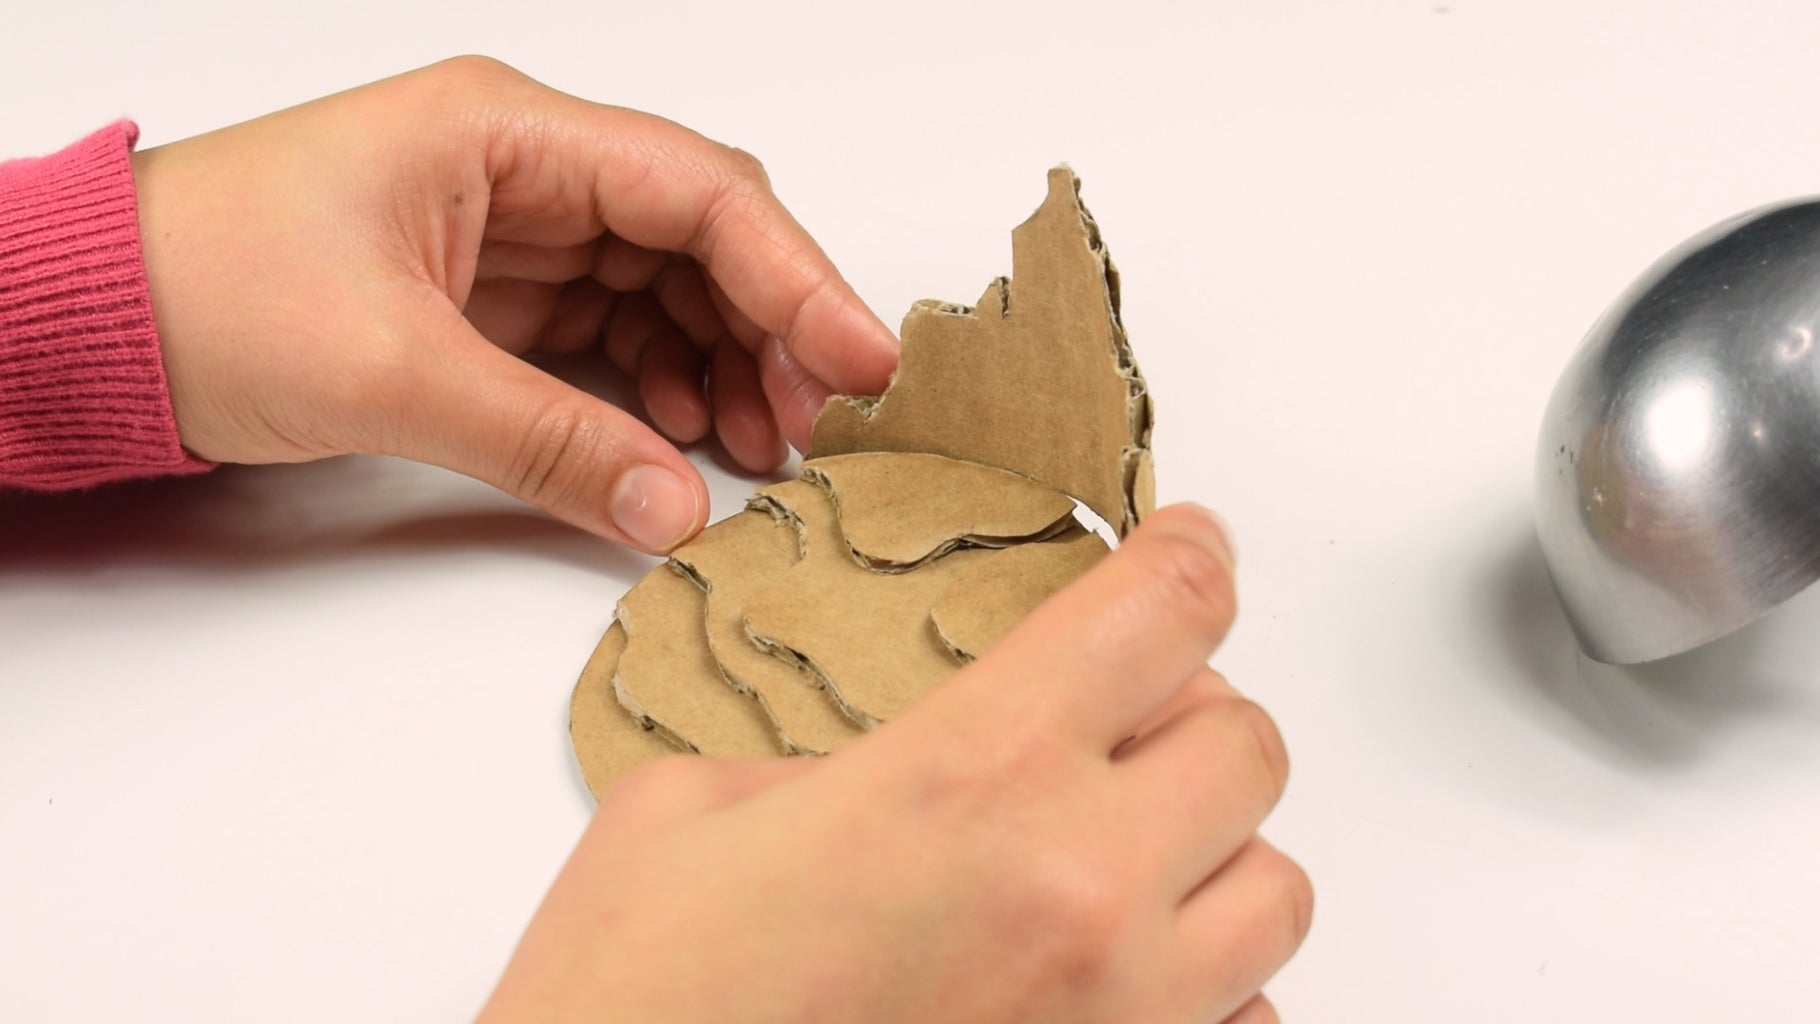 Making the Mountain and Foothill With Cardboard